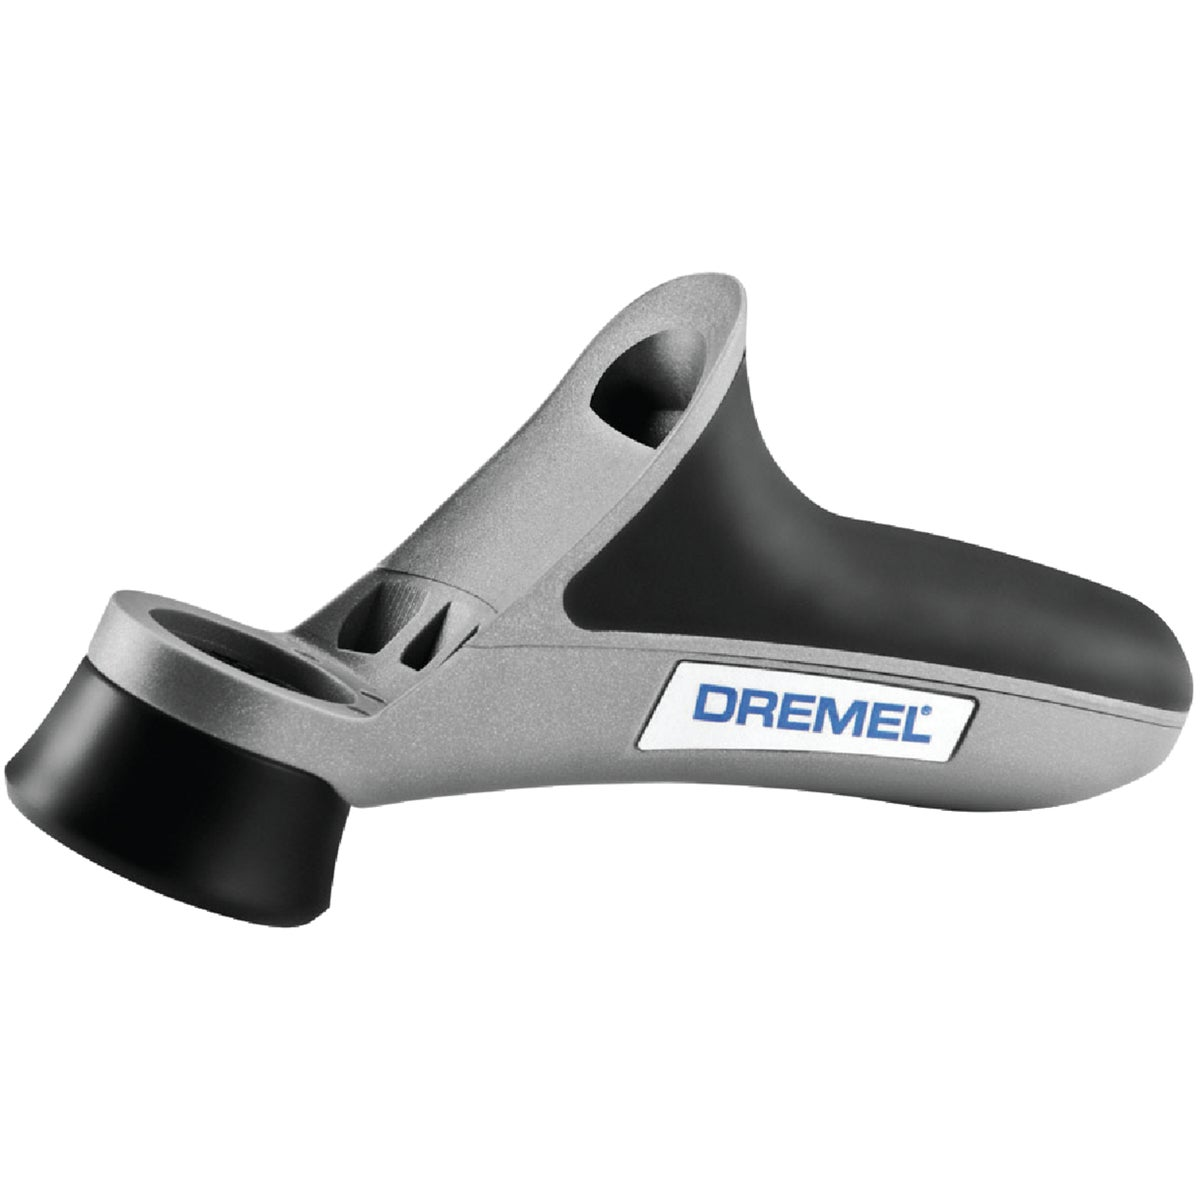 DETAILERS GRIP KIT - A577 by Dremel Mfg Co